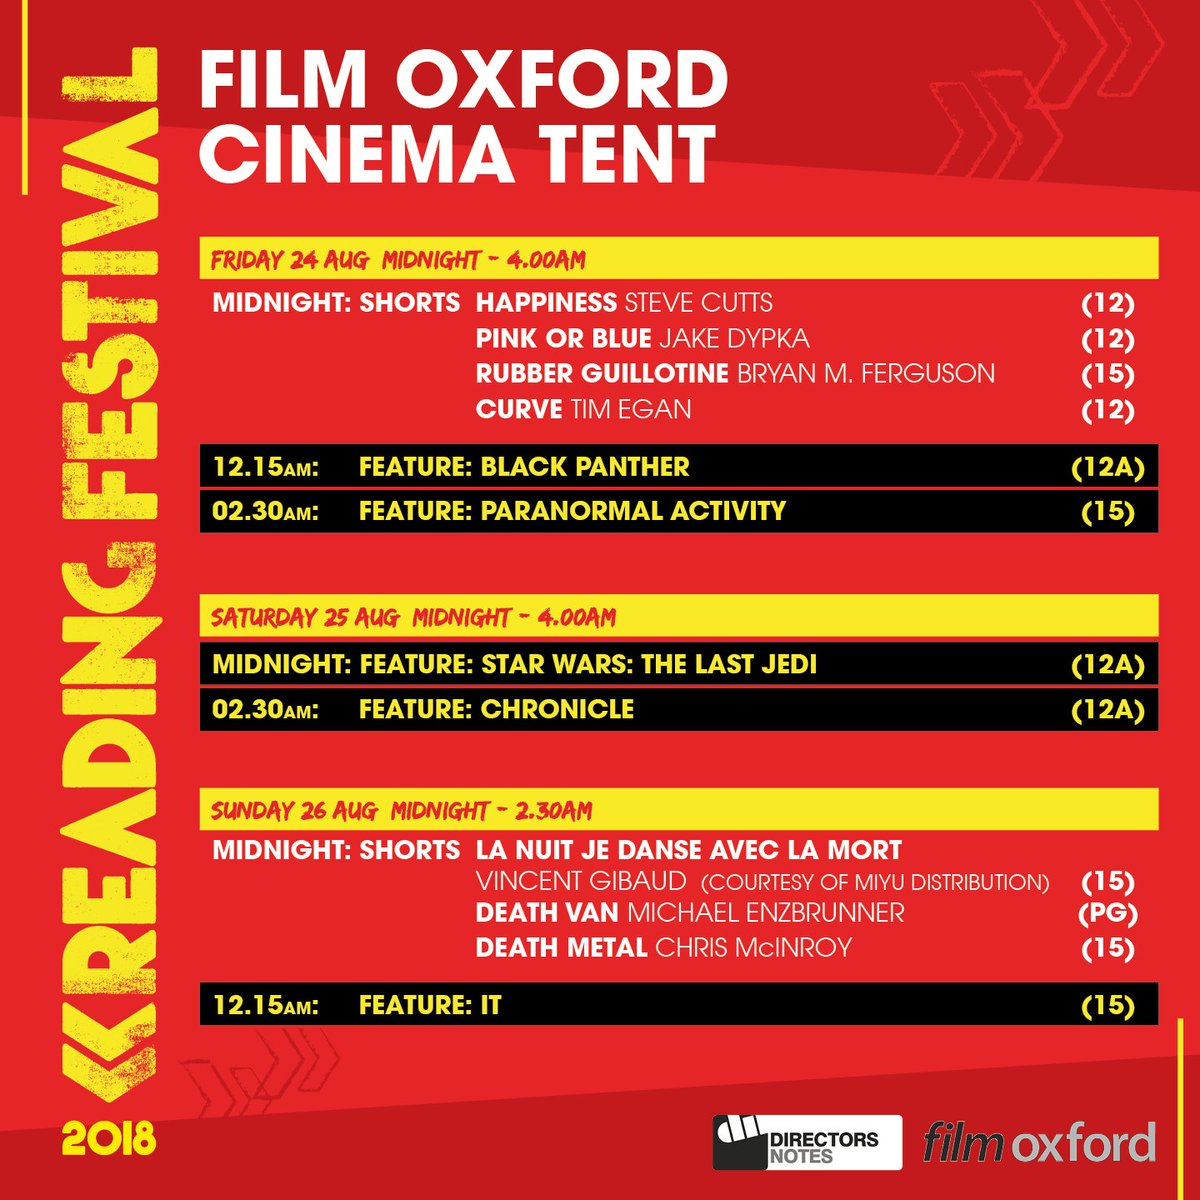 Fancy a film at #RandL18? 👀 Head to the @FILMOXFORD cinema tent after the music finishes at the 1xtra Stage! 🎬🎬